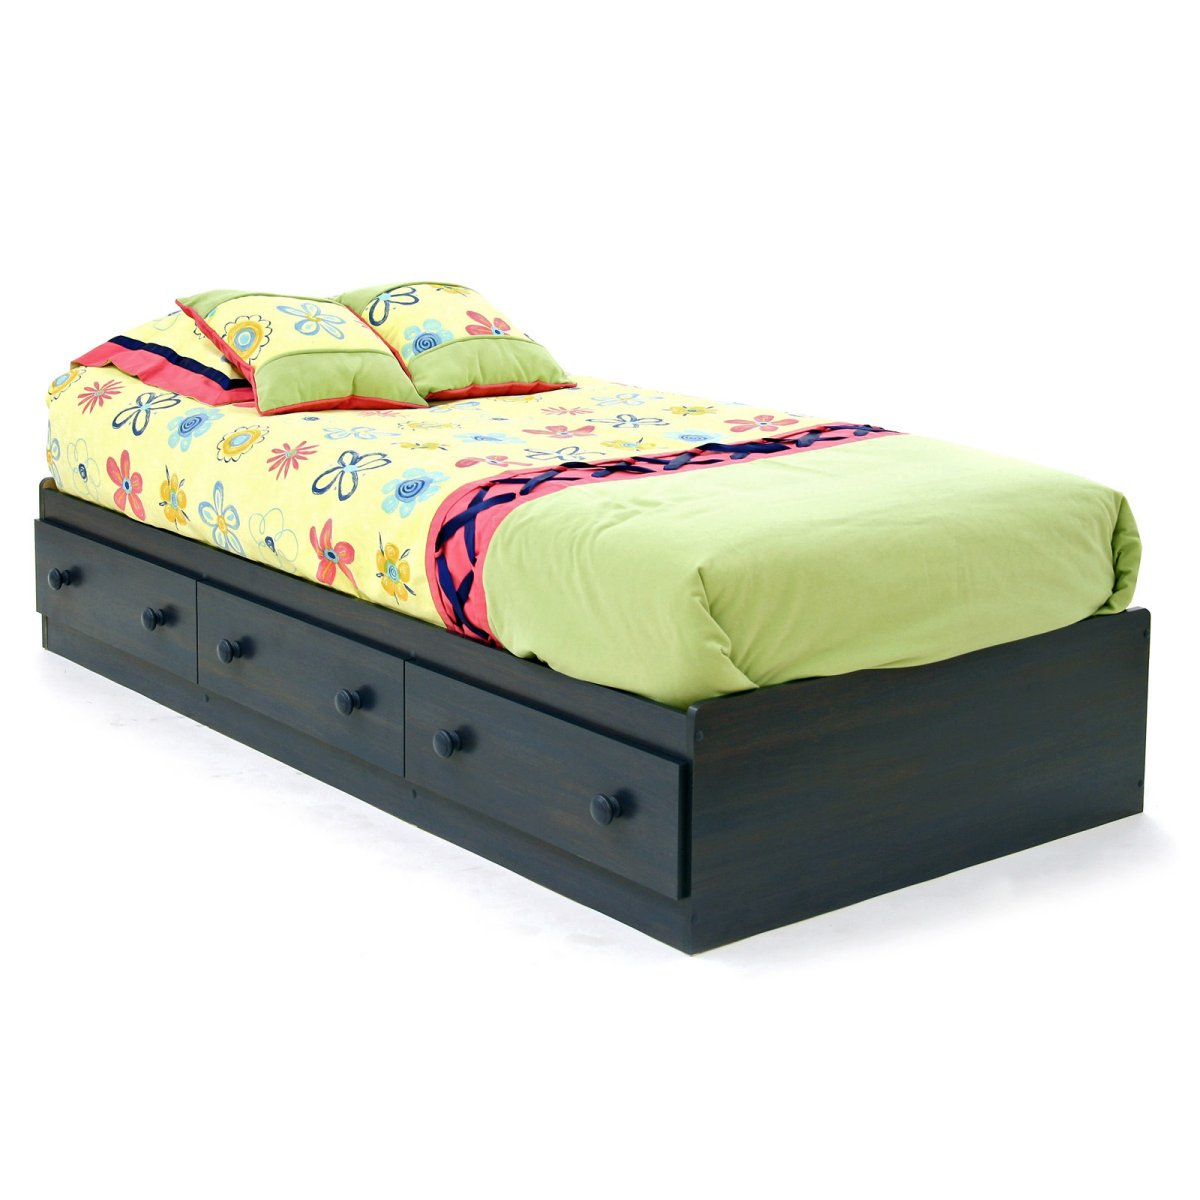 Platform Bed With Storage diy platform bed with storage drawers plans ...